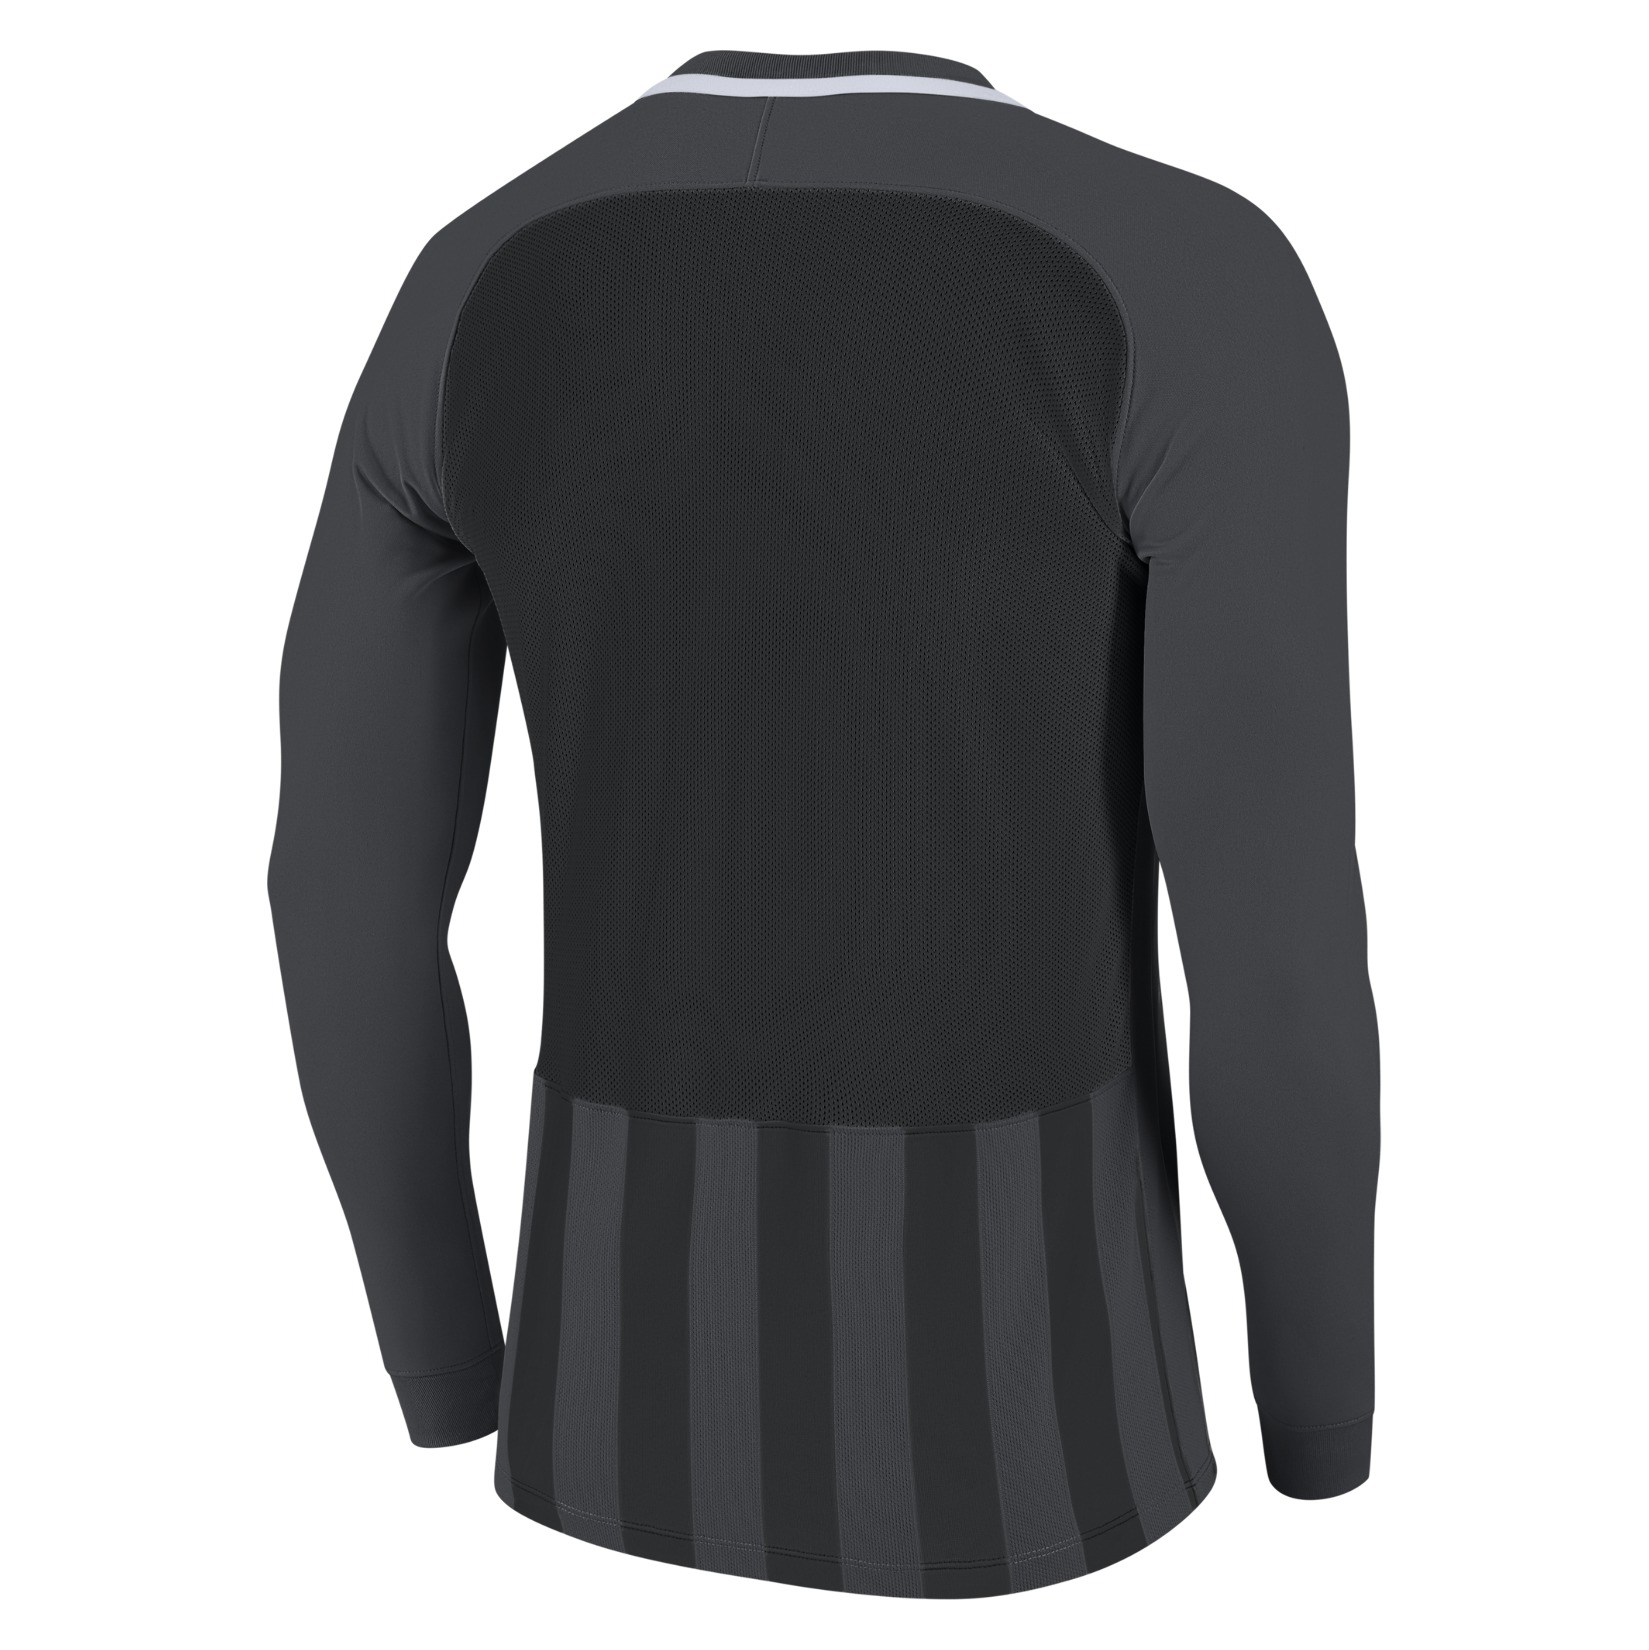 Nike Striped Division III Long Sleeve Football Shirt